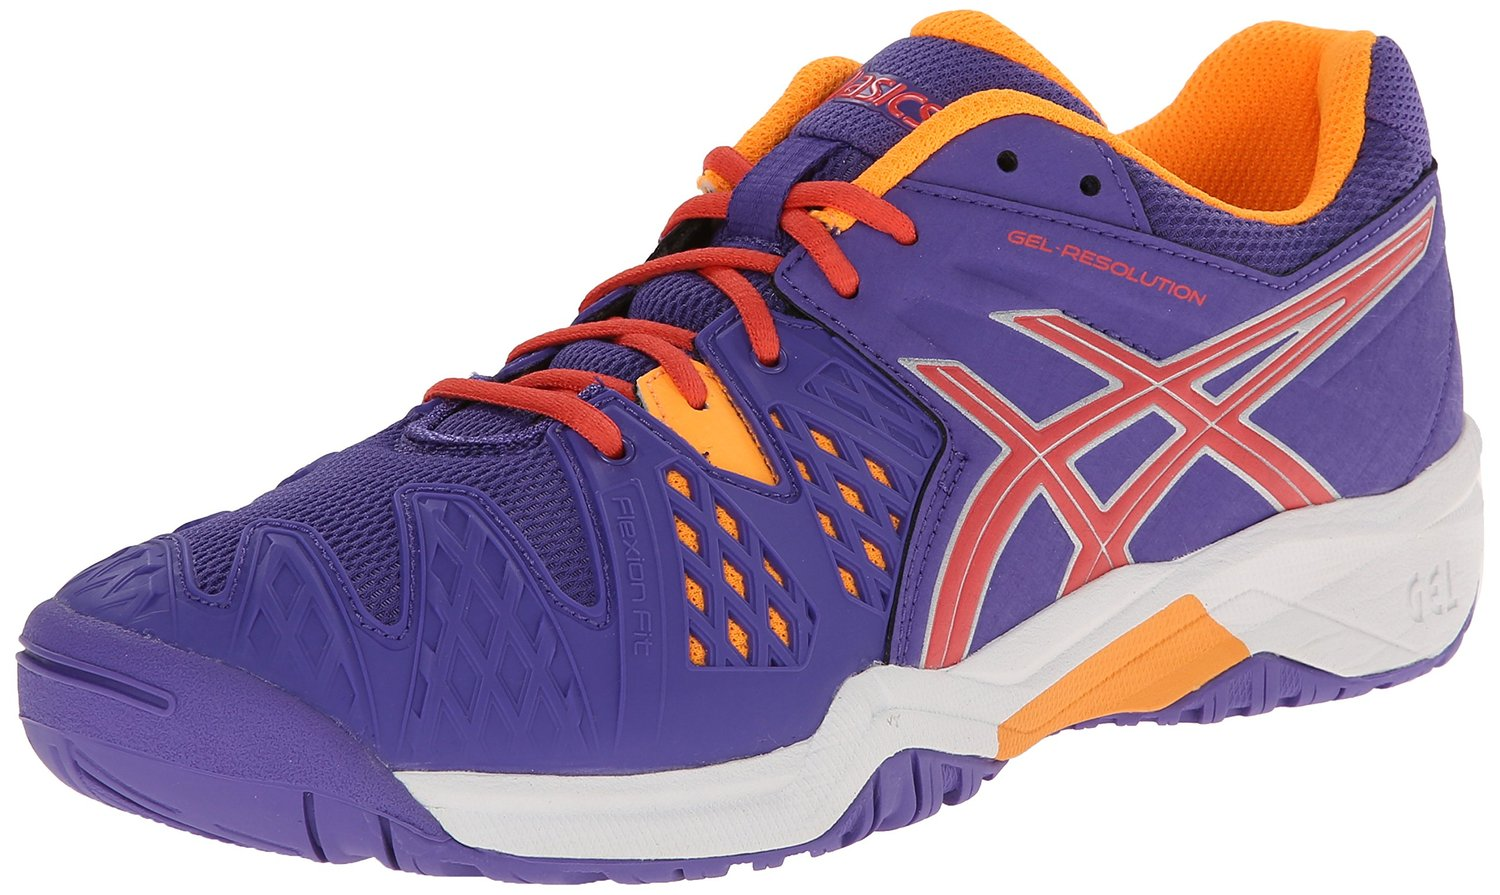 Deals 6Find On Cheap 6 Asics Evolution Line At f6YgyvmbI7